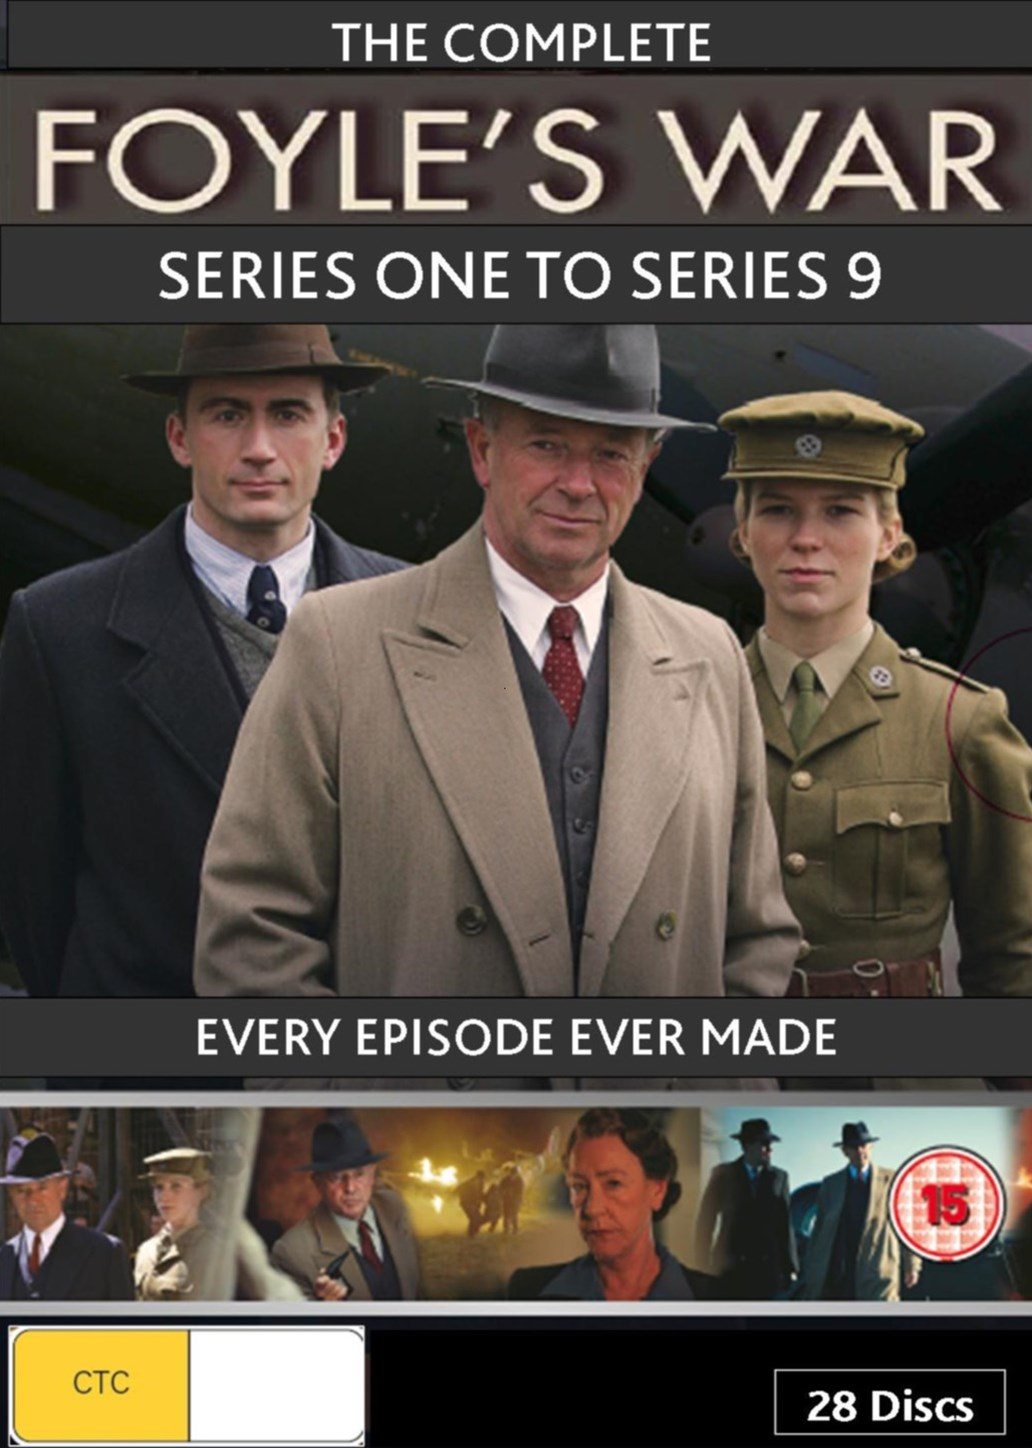 Foyle's War - The Complete Collection